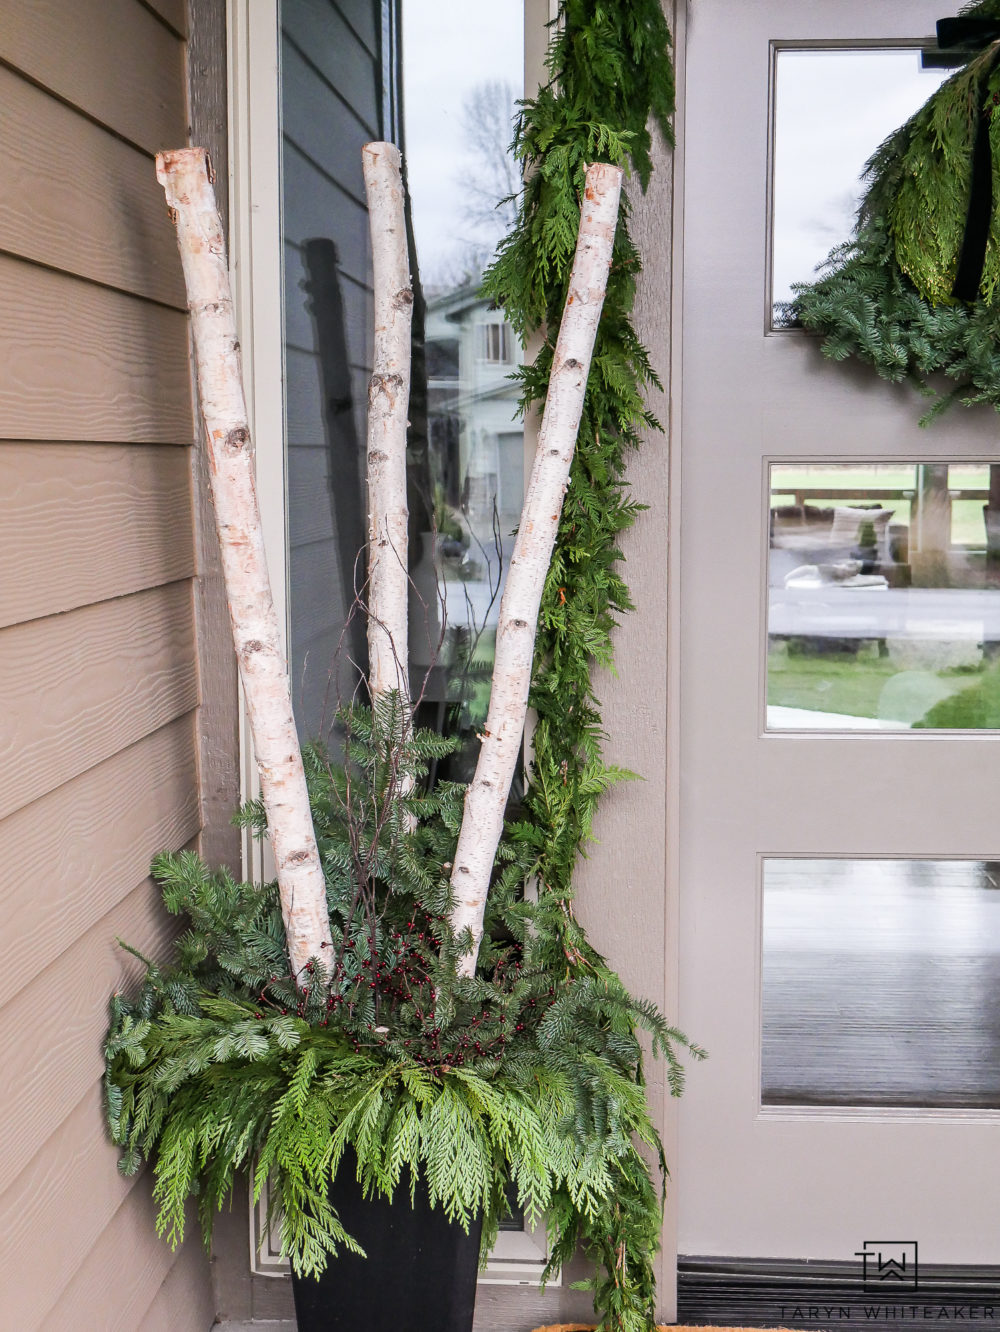 Create your own DIY Christmas Planters filled with fresh greens and birch logs. Love this traditional yet modern look for the holidays.